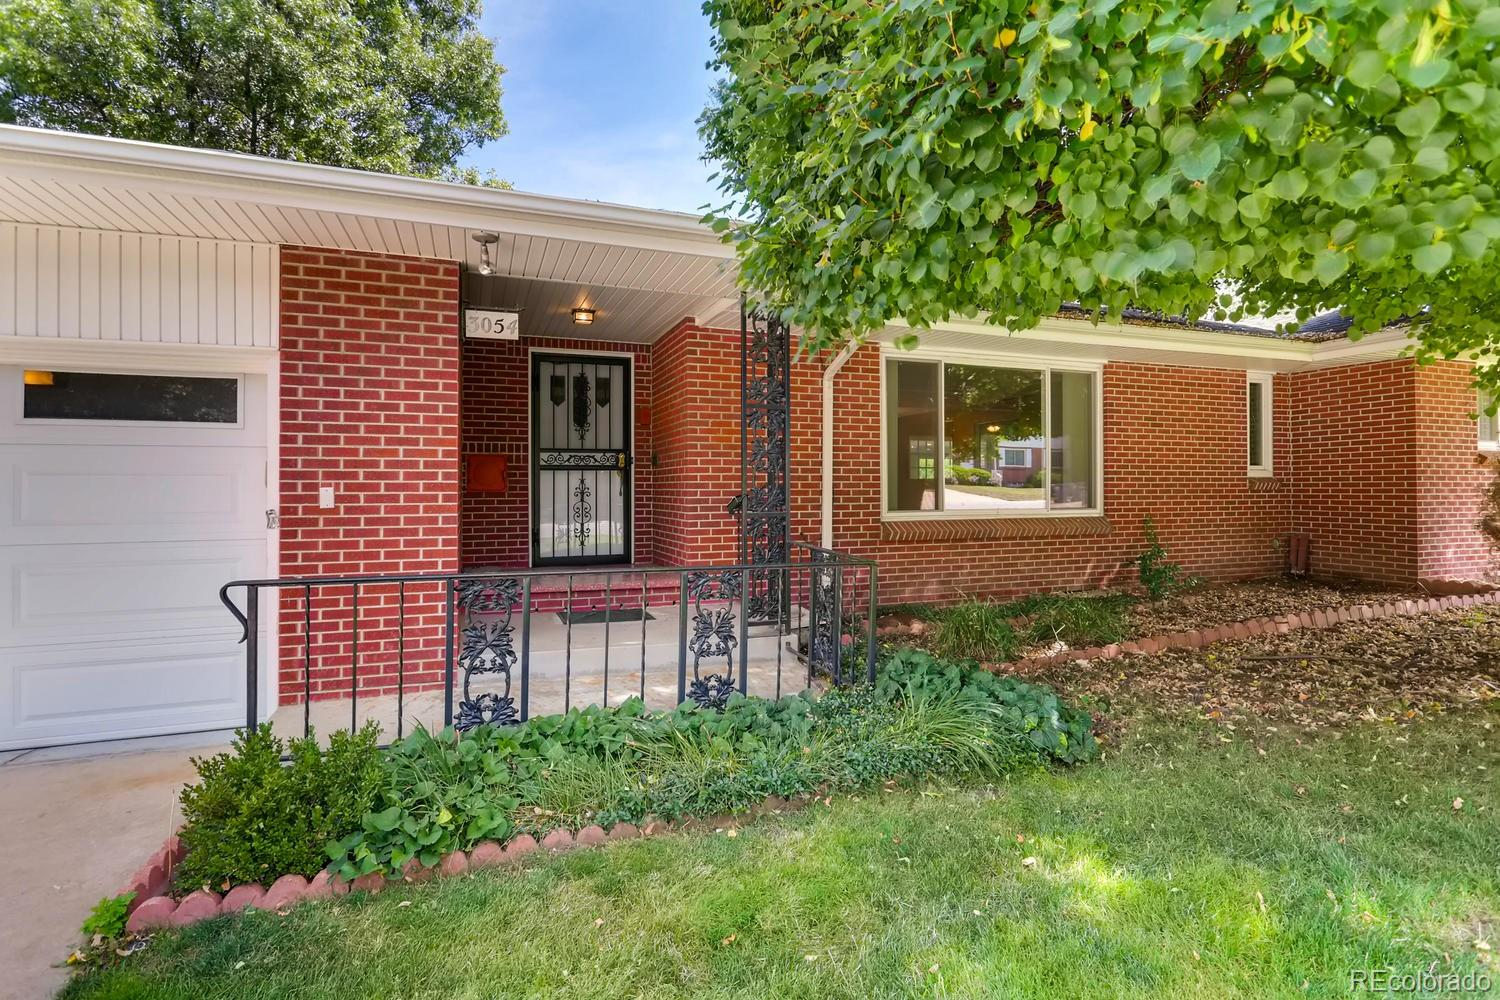 MLS# 7750175 - 3 - 3054 S Columbine Street, Denver, CO 80210